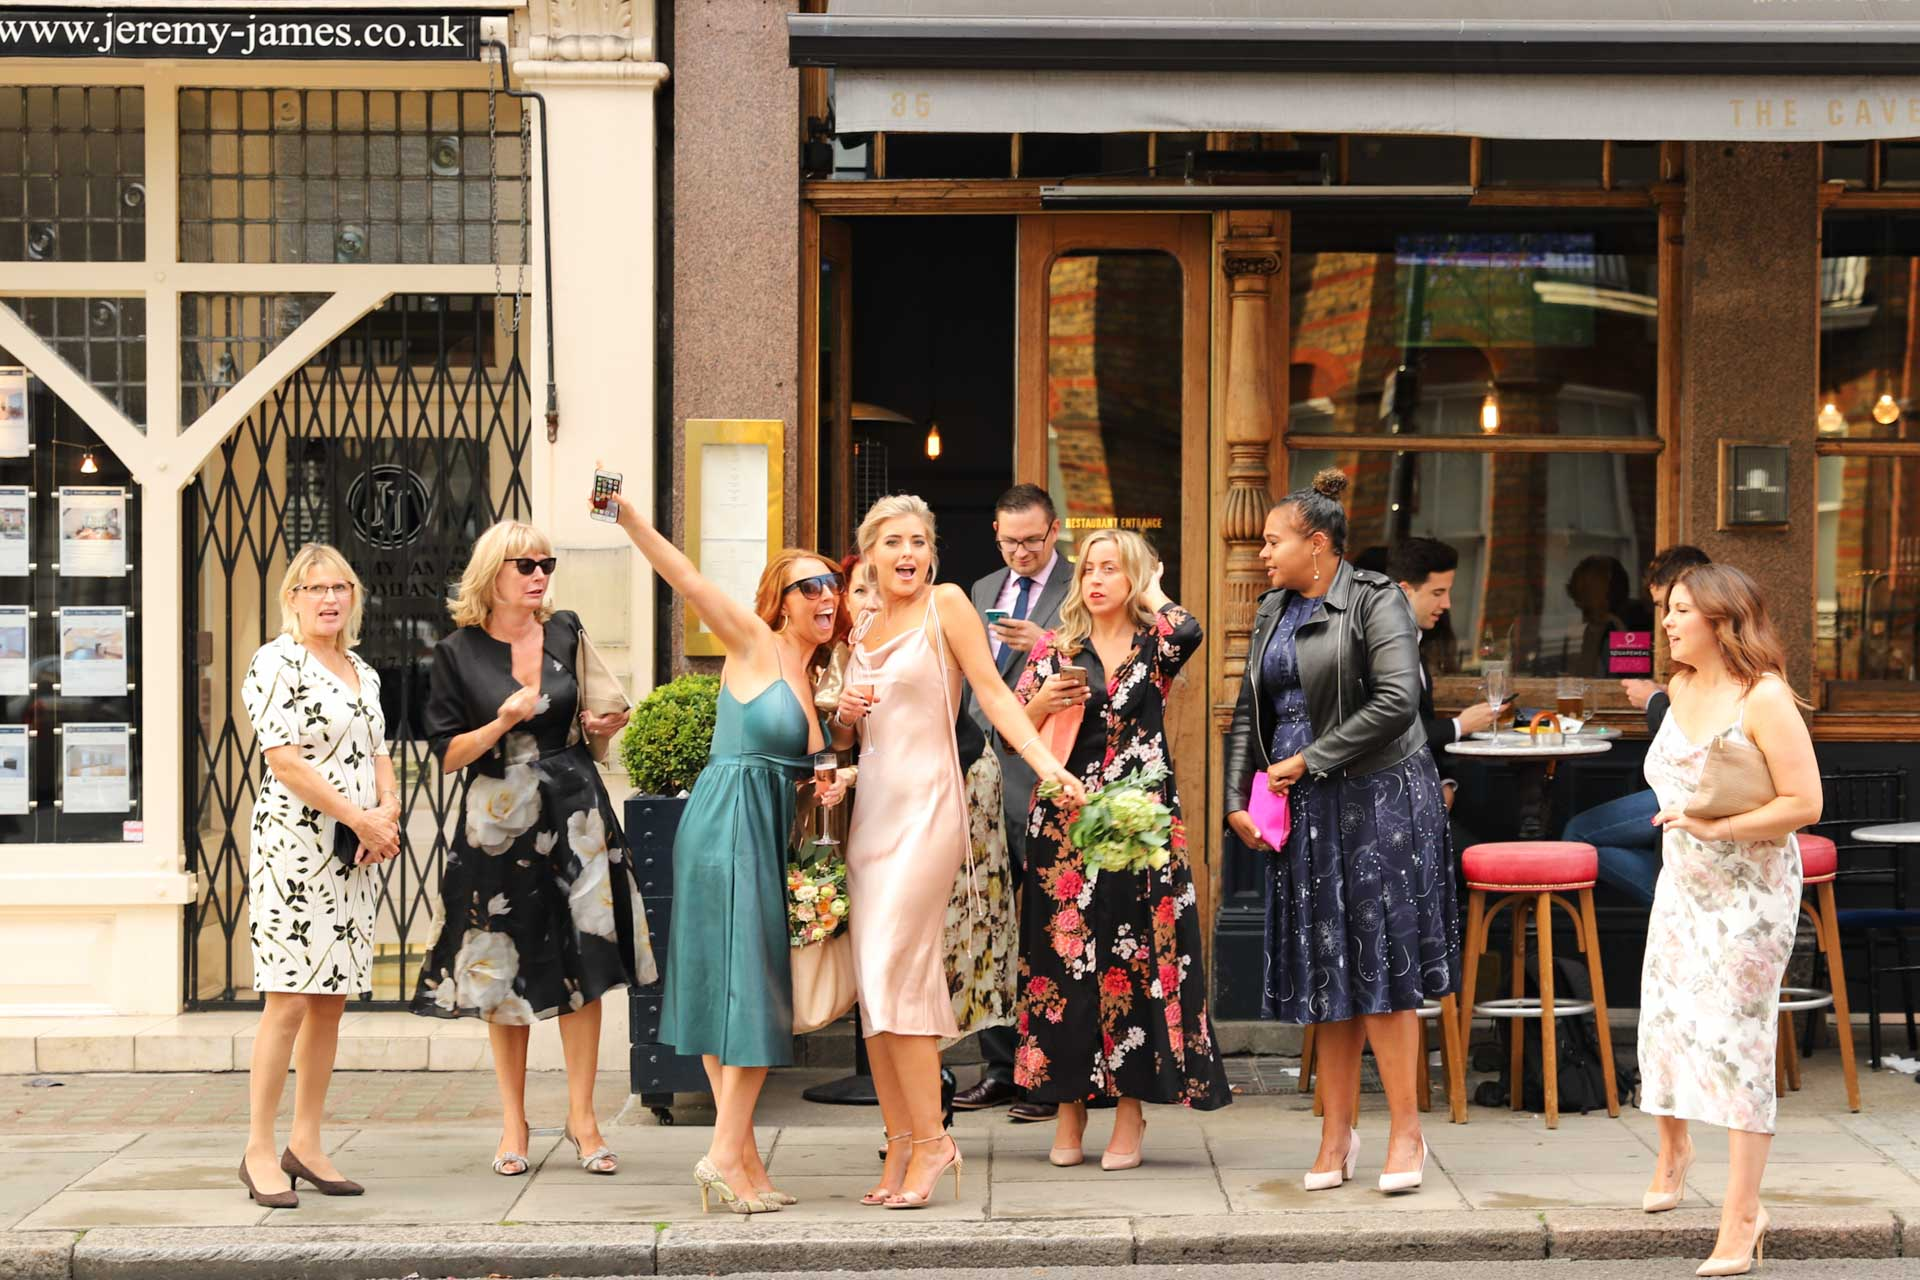 Bachelorette Party in Marylebone